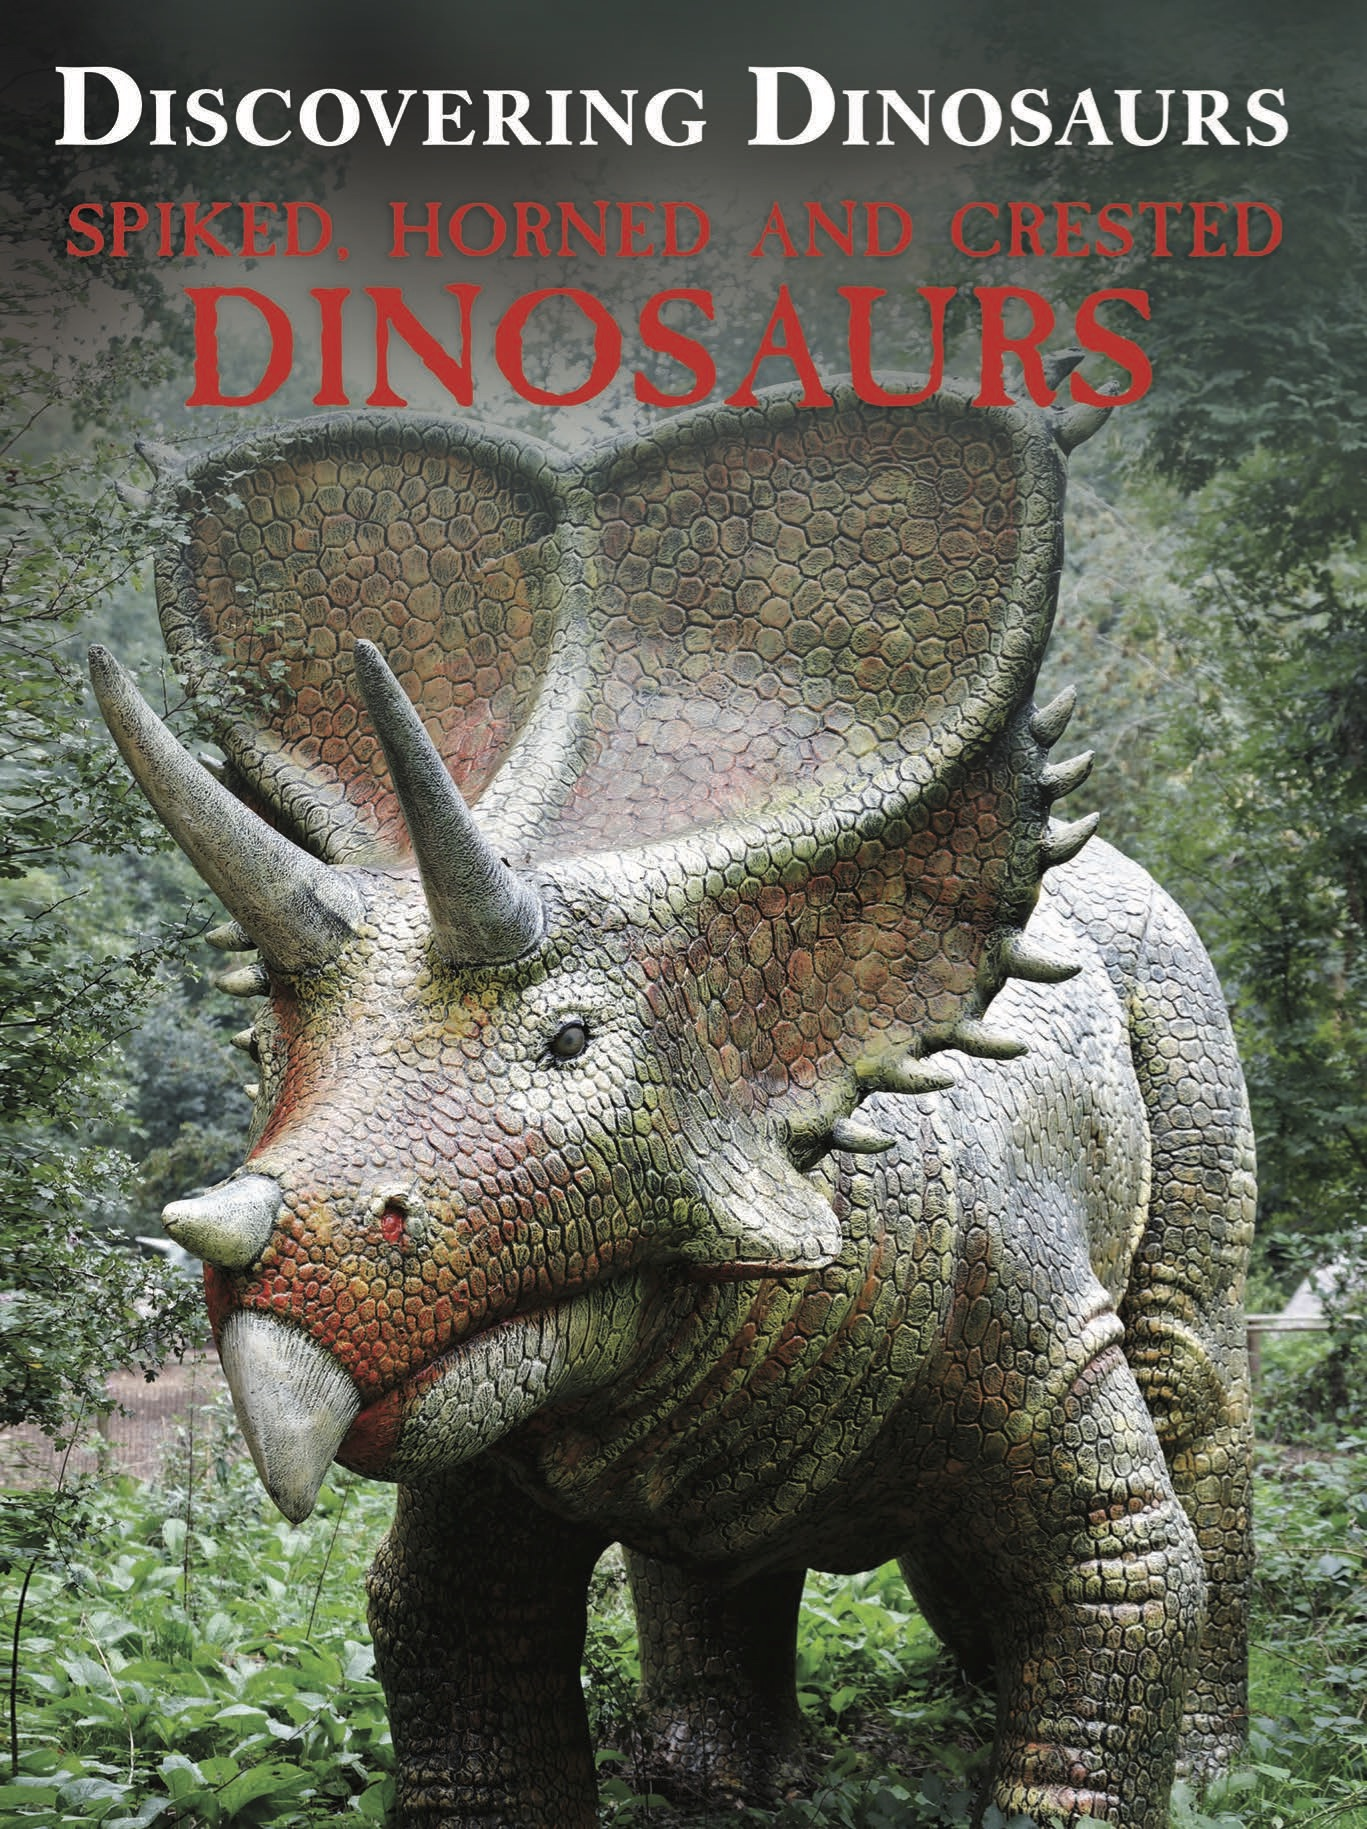 Discovering Dinosaurs: Spiked, Horned and Crested Dinosaurs